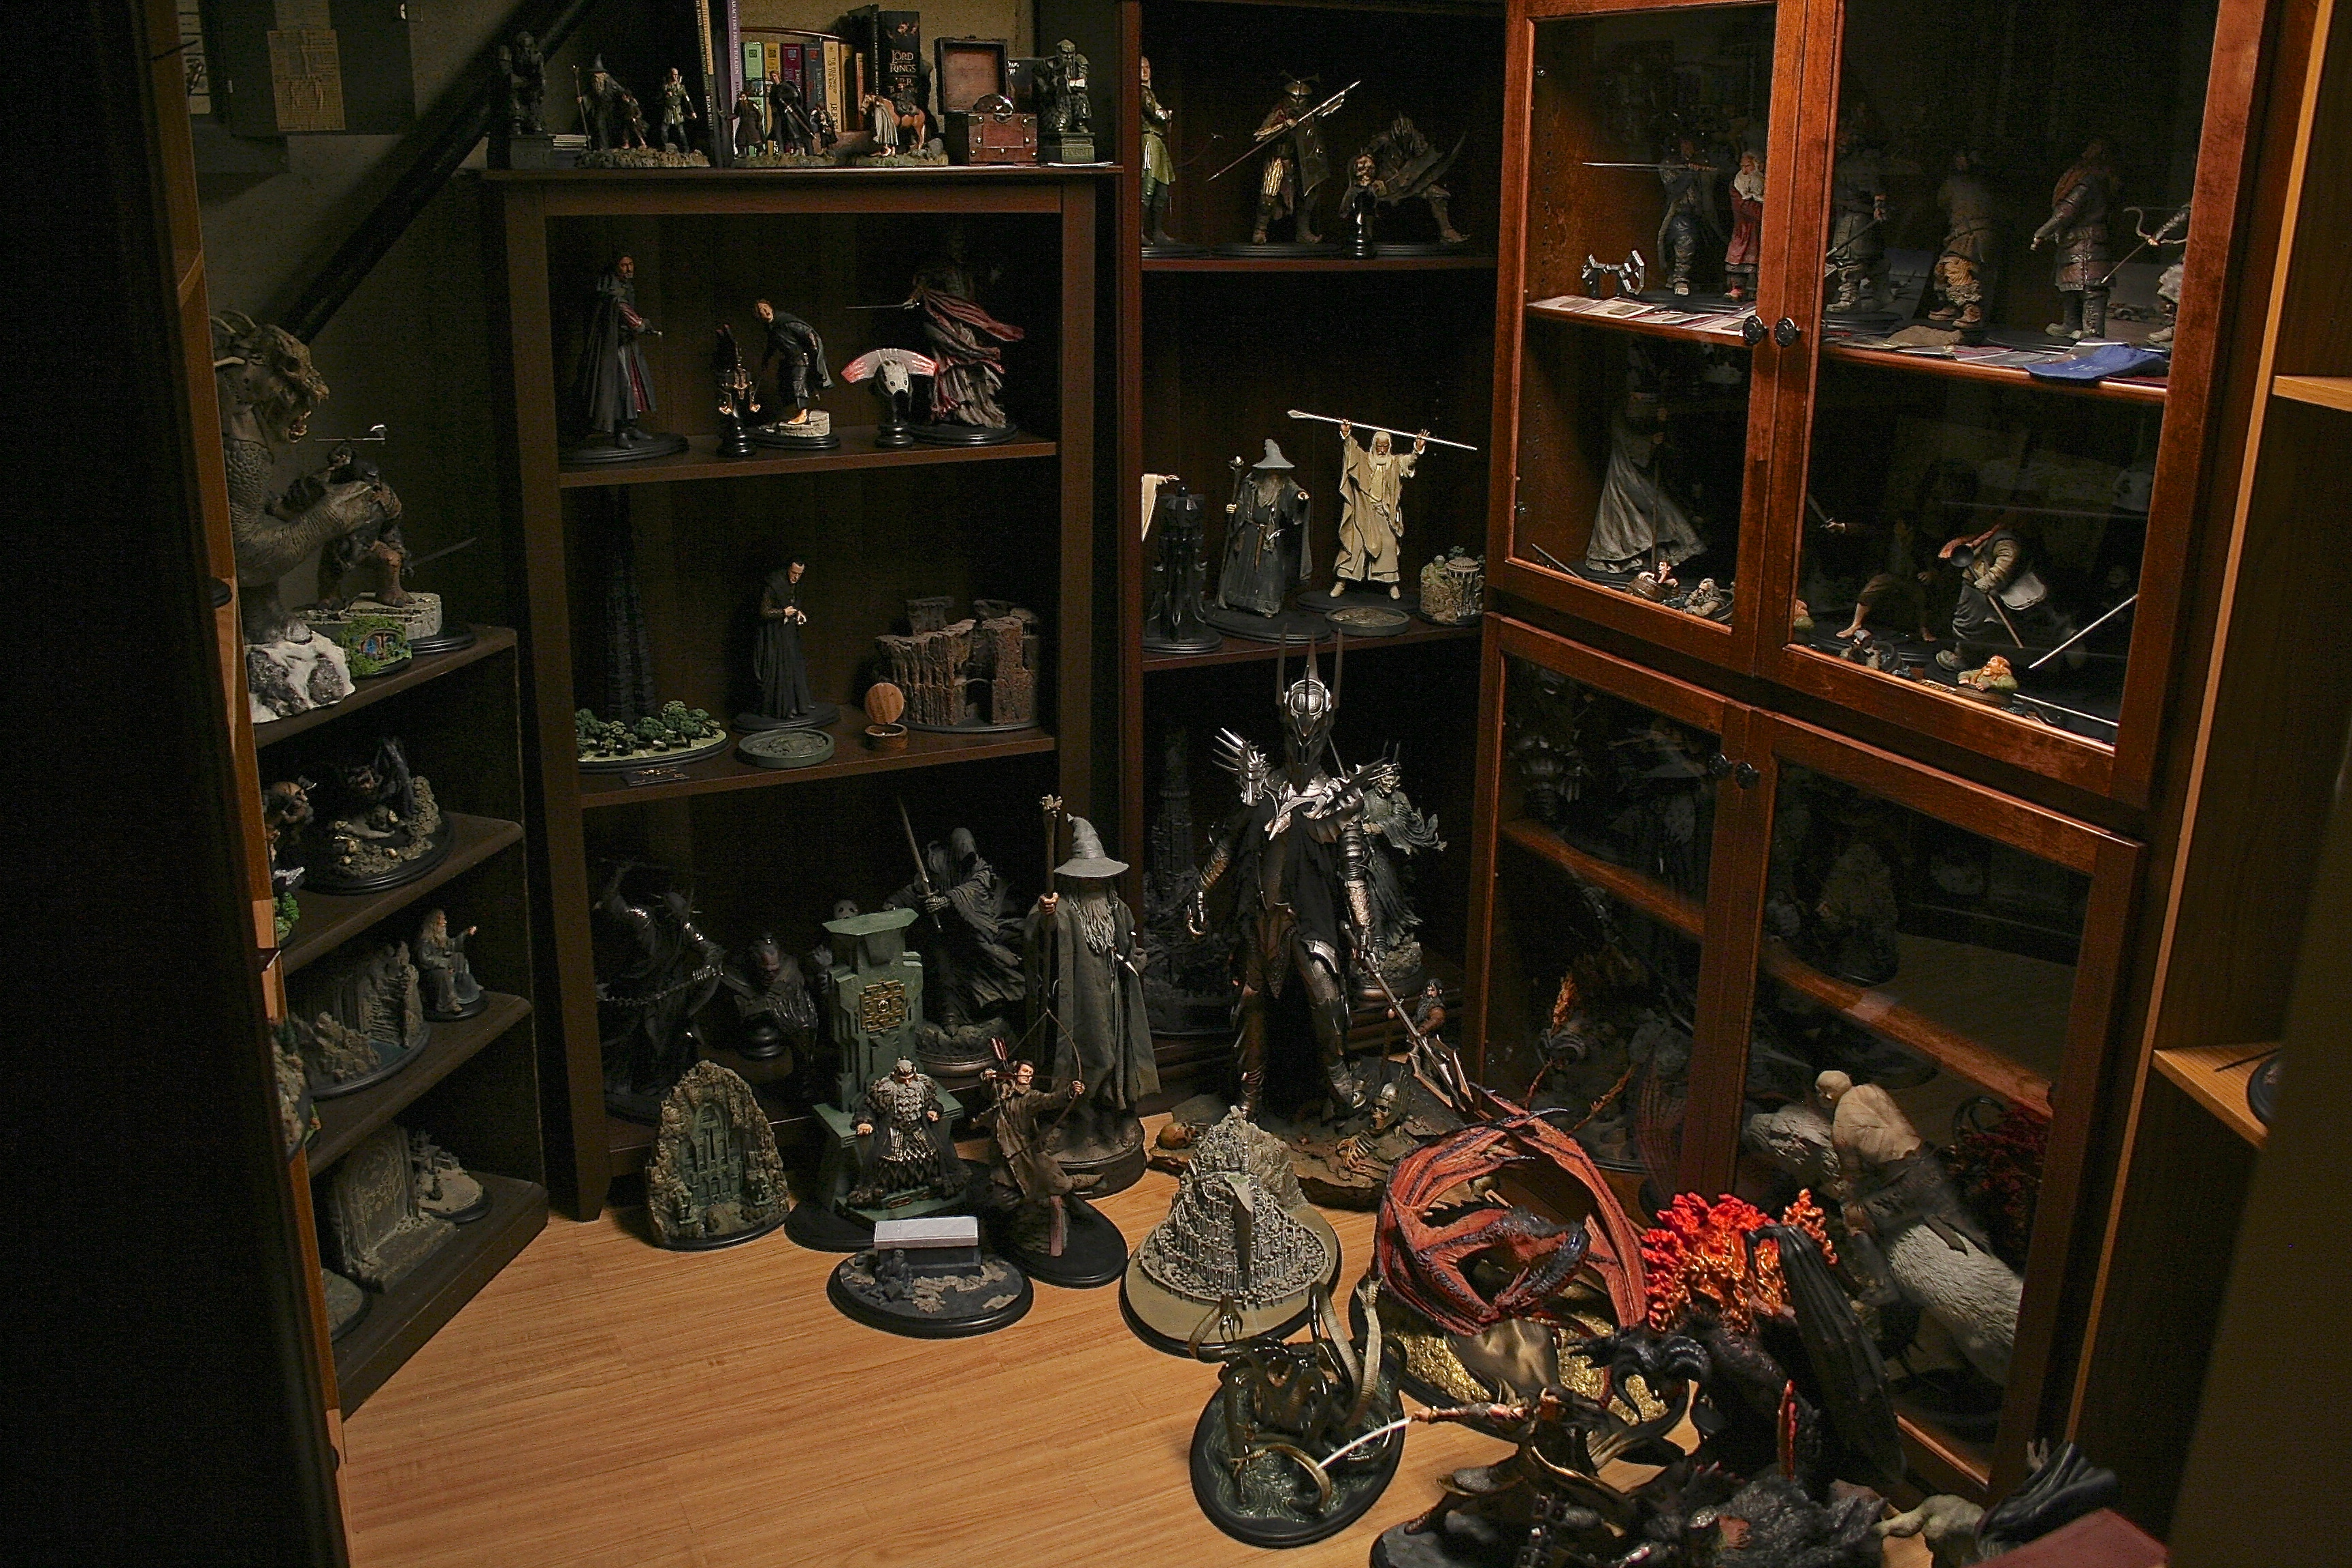 Sideshow Collectibles Hobbit Movie News And Rumors